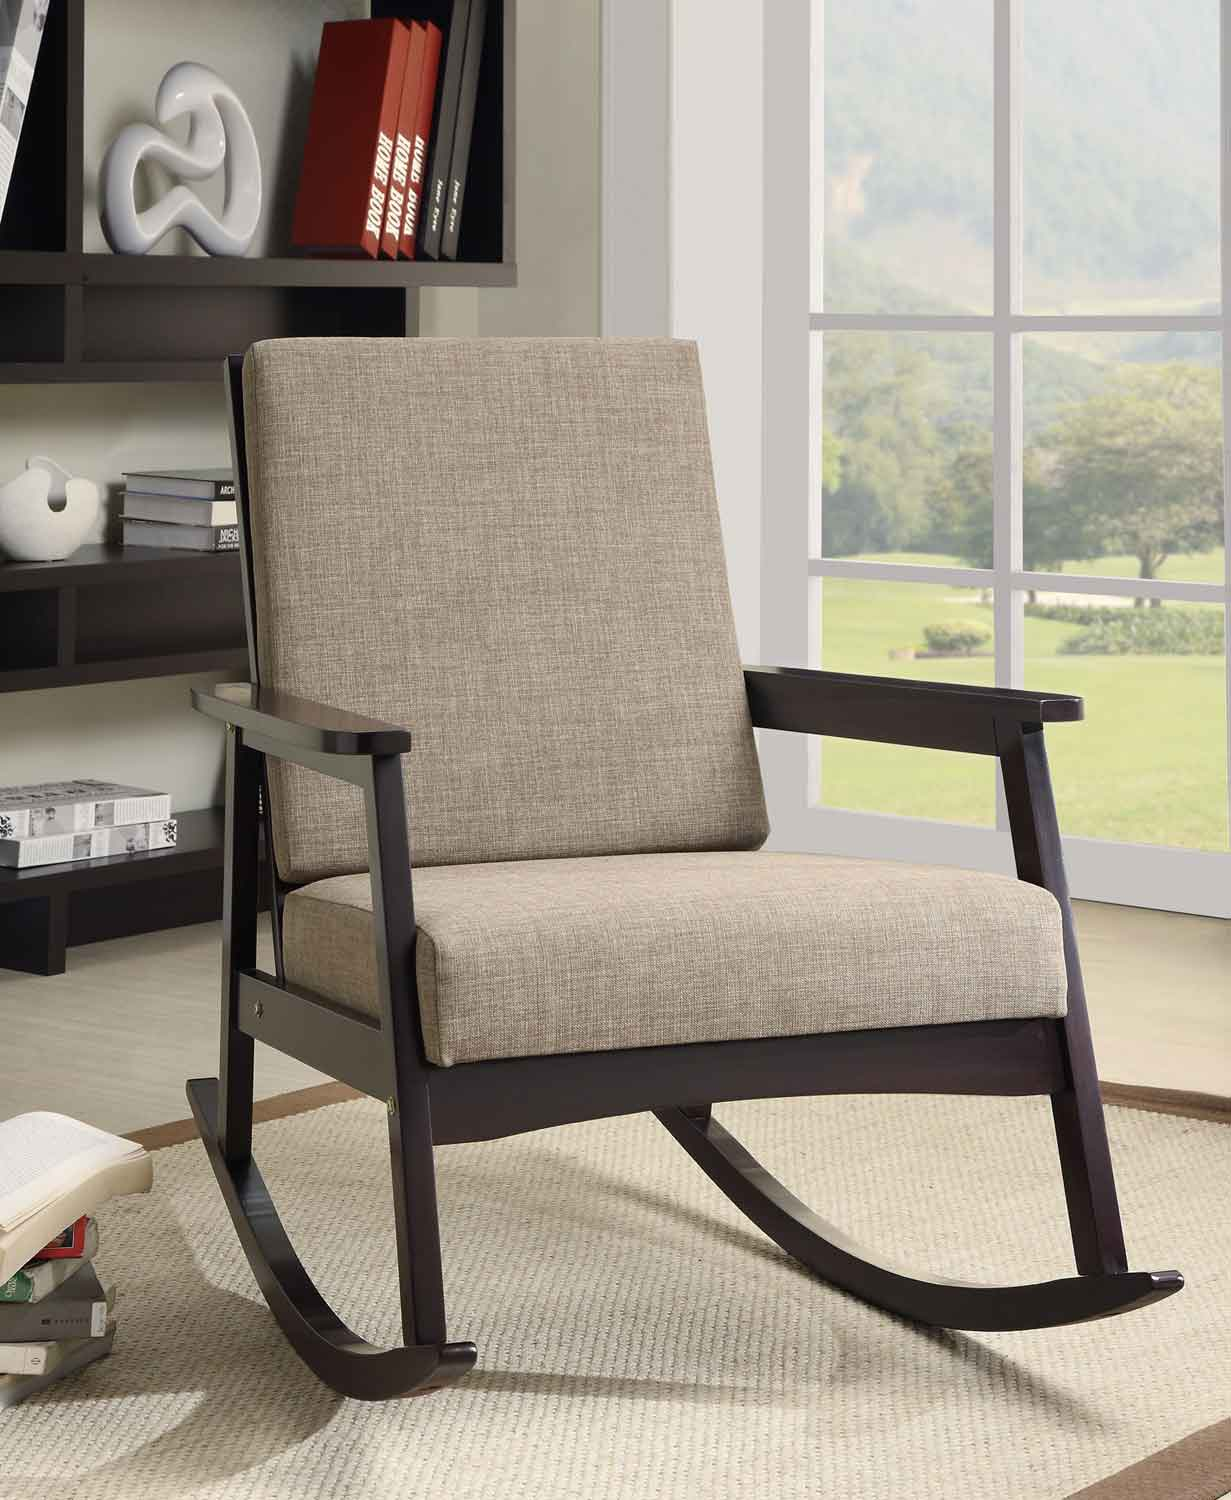 Getting the stylish modern rocking chair for your comfy yet trendy modern room midcityeast for Contemporary living room chairs